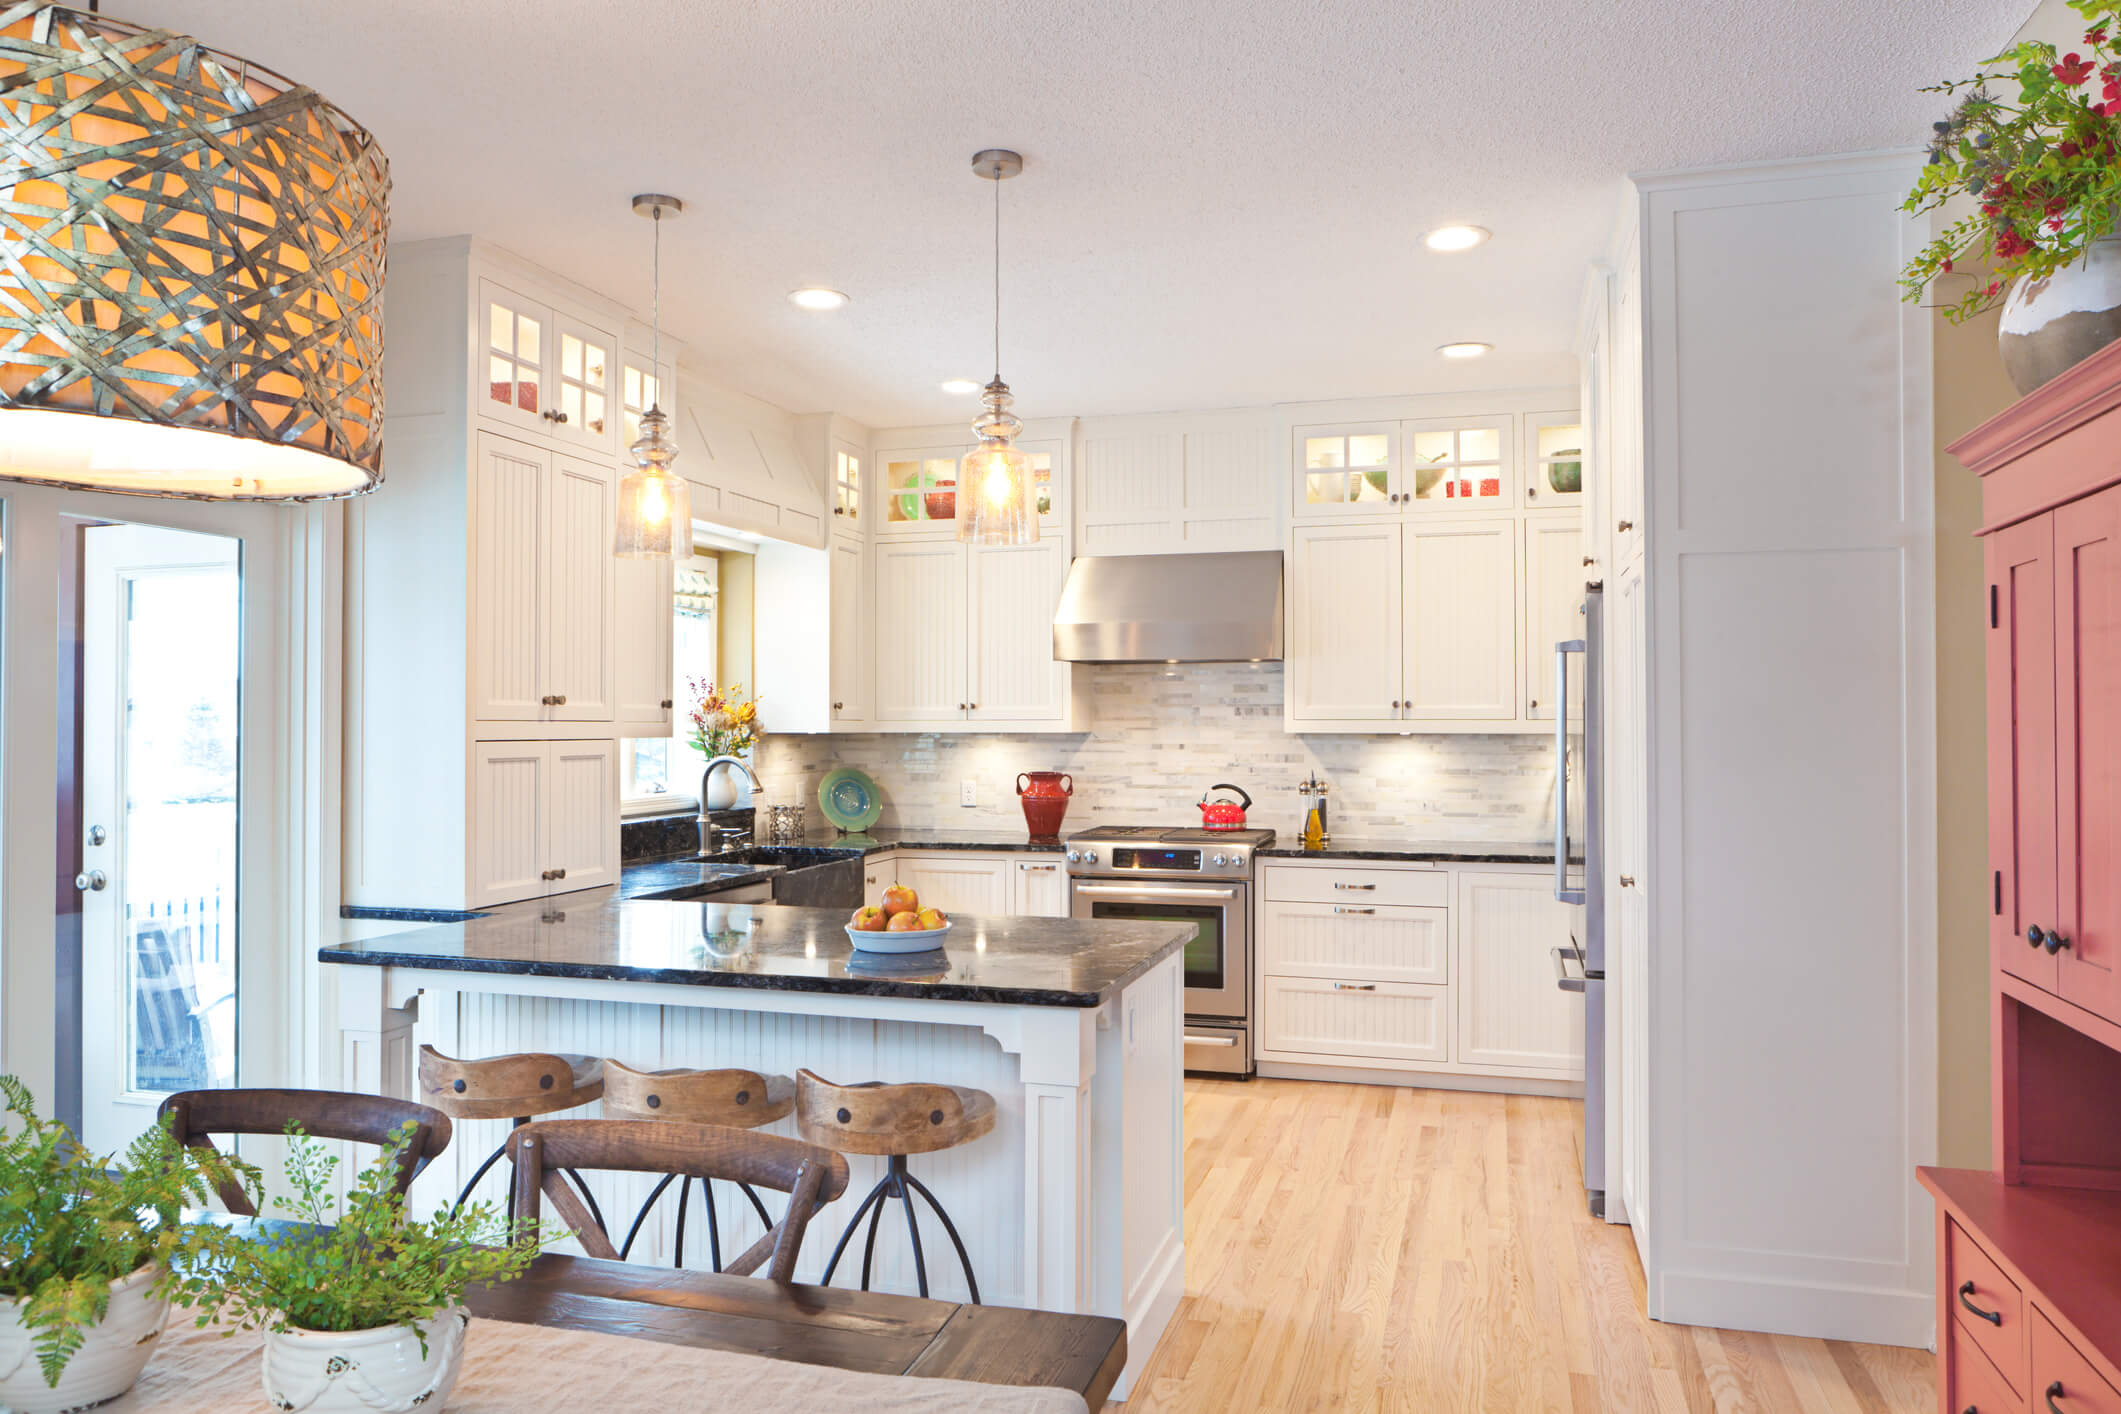 4 Tips For A Kitchen Remodel On A Budget